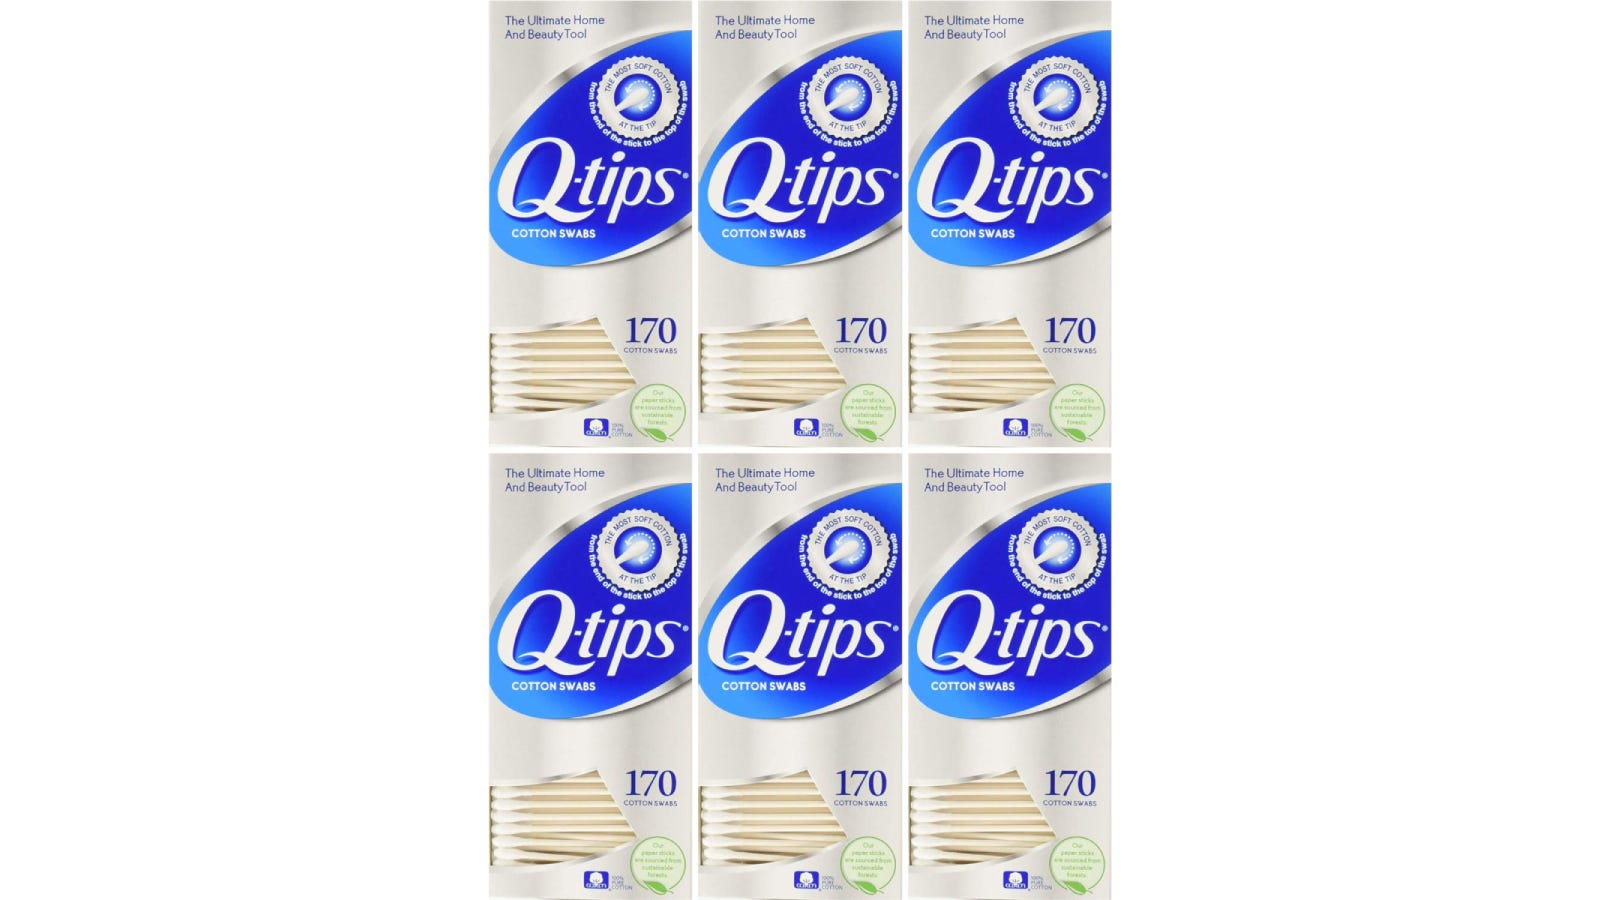 Six boxes of Q-tips cotton swabs.